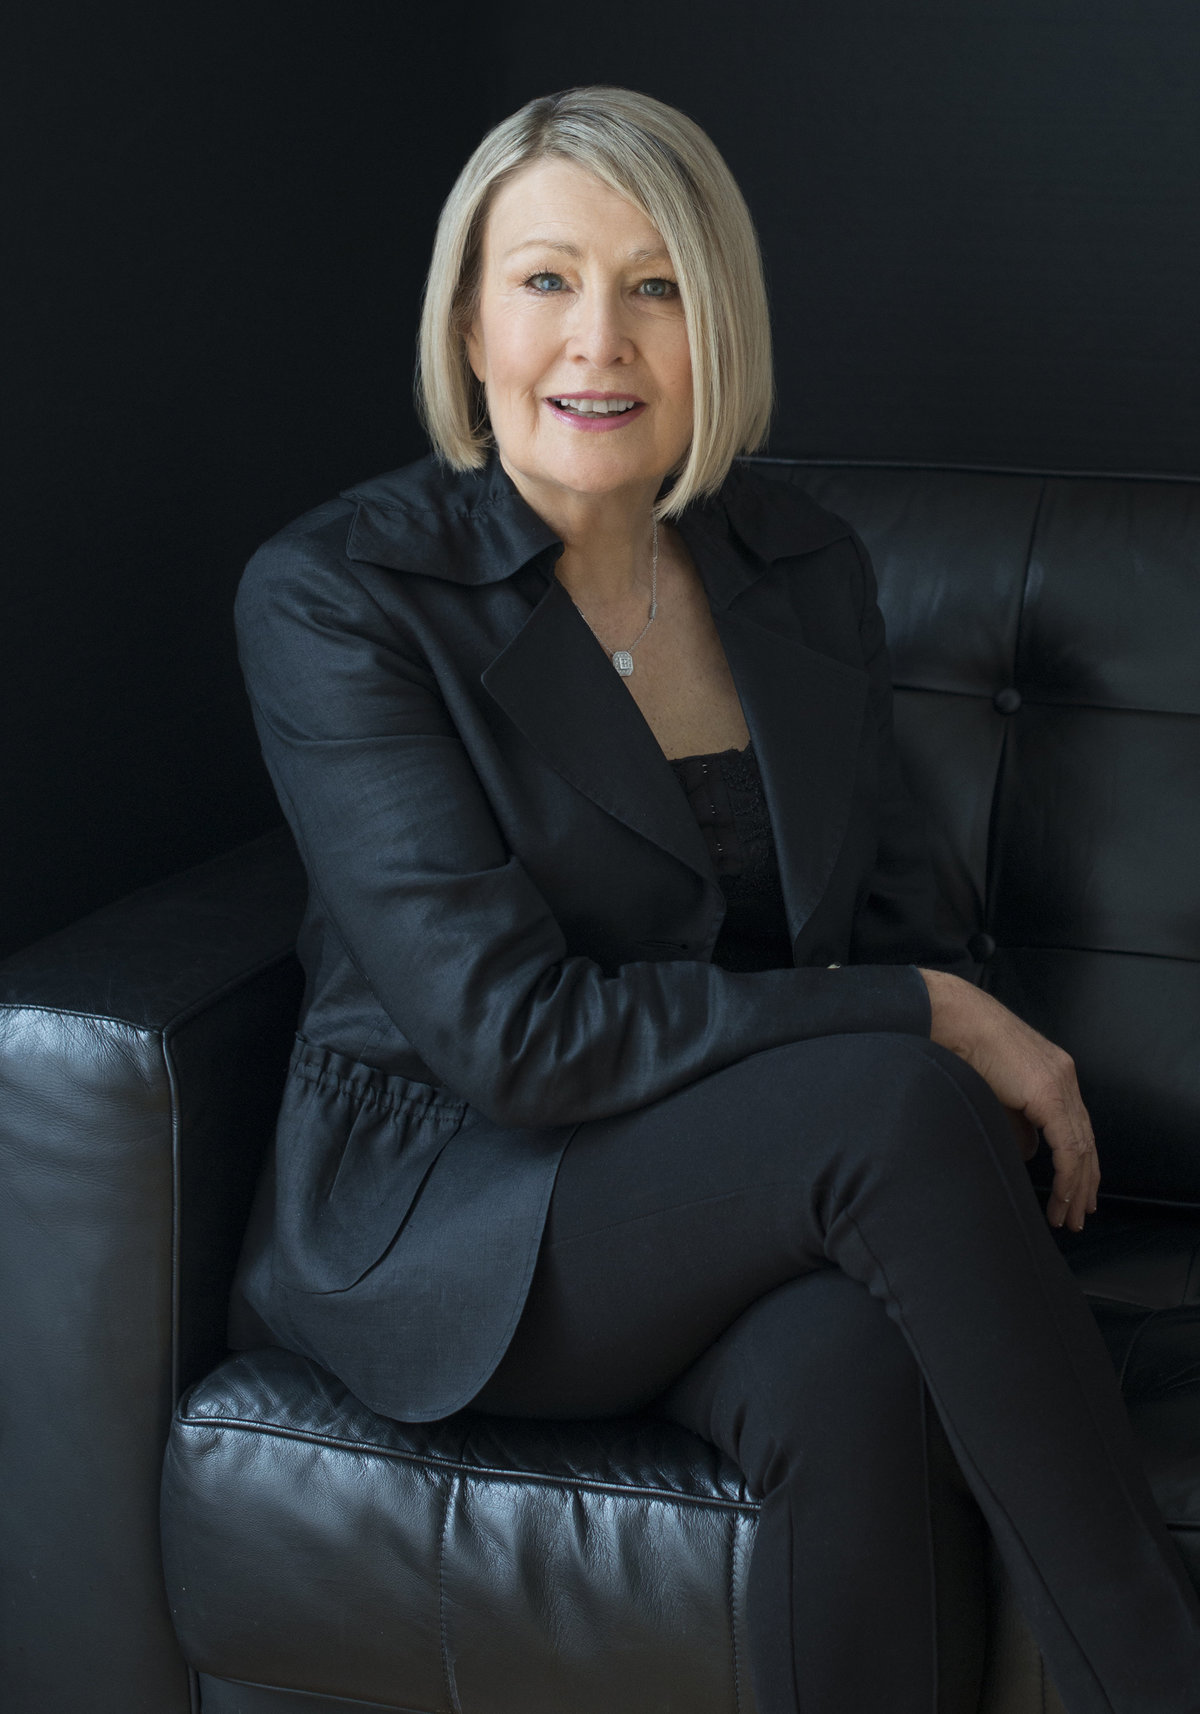 woman Ceo  headshot  photography by puja misra  specialist in womens  photography sitting on black couch wearing black formal  jacket